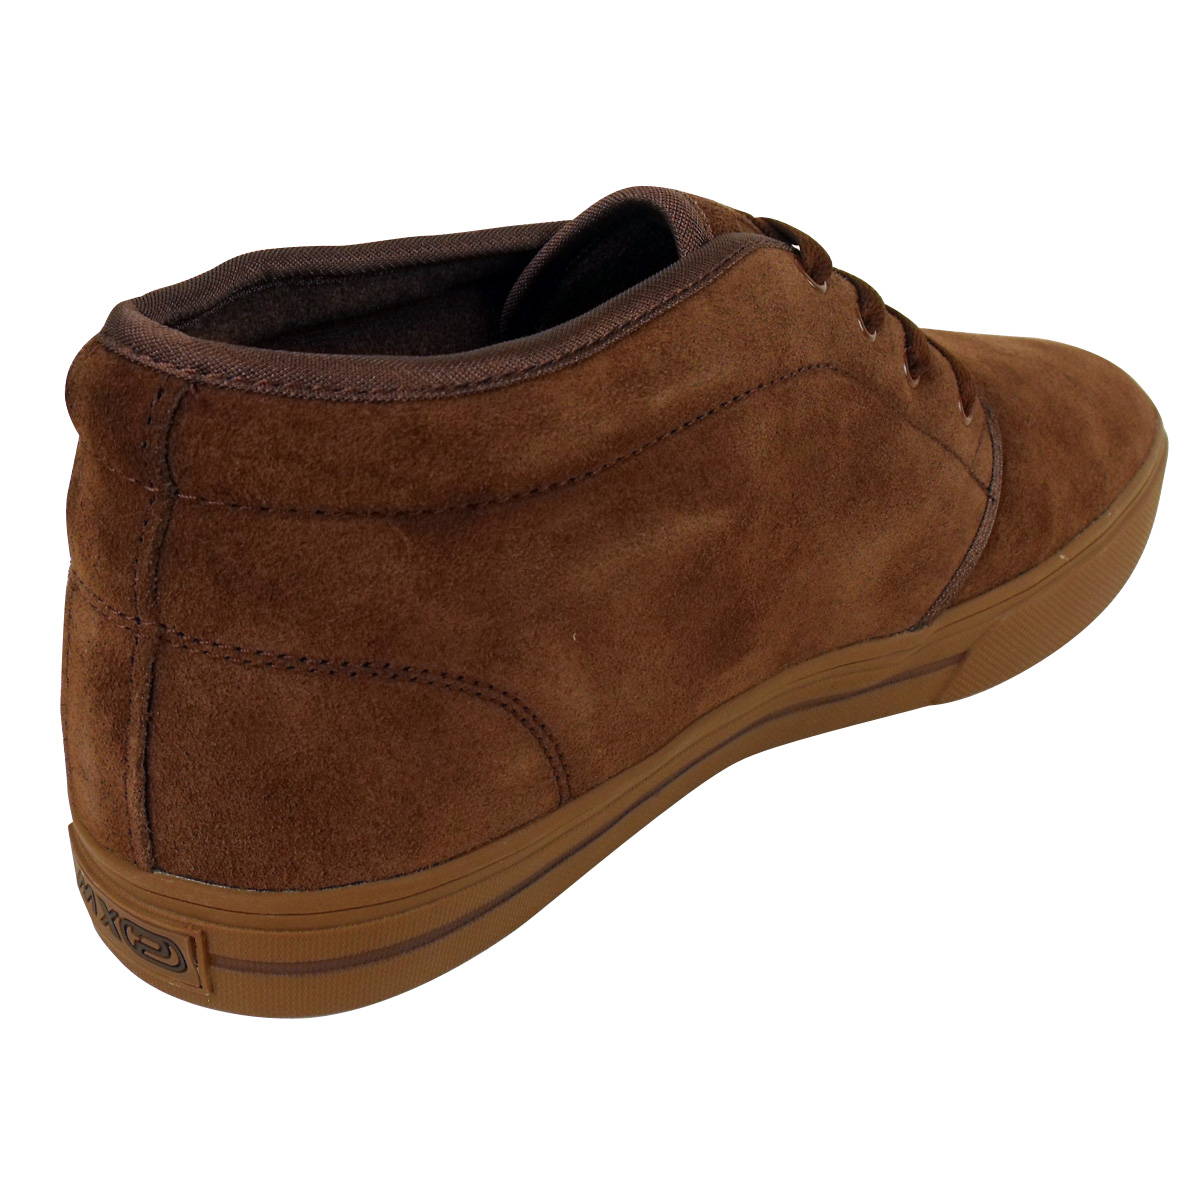 mens genuine suede leather desert boot chukka mod ankle